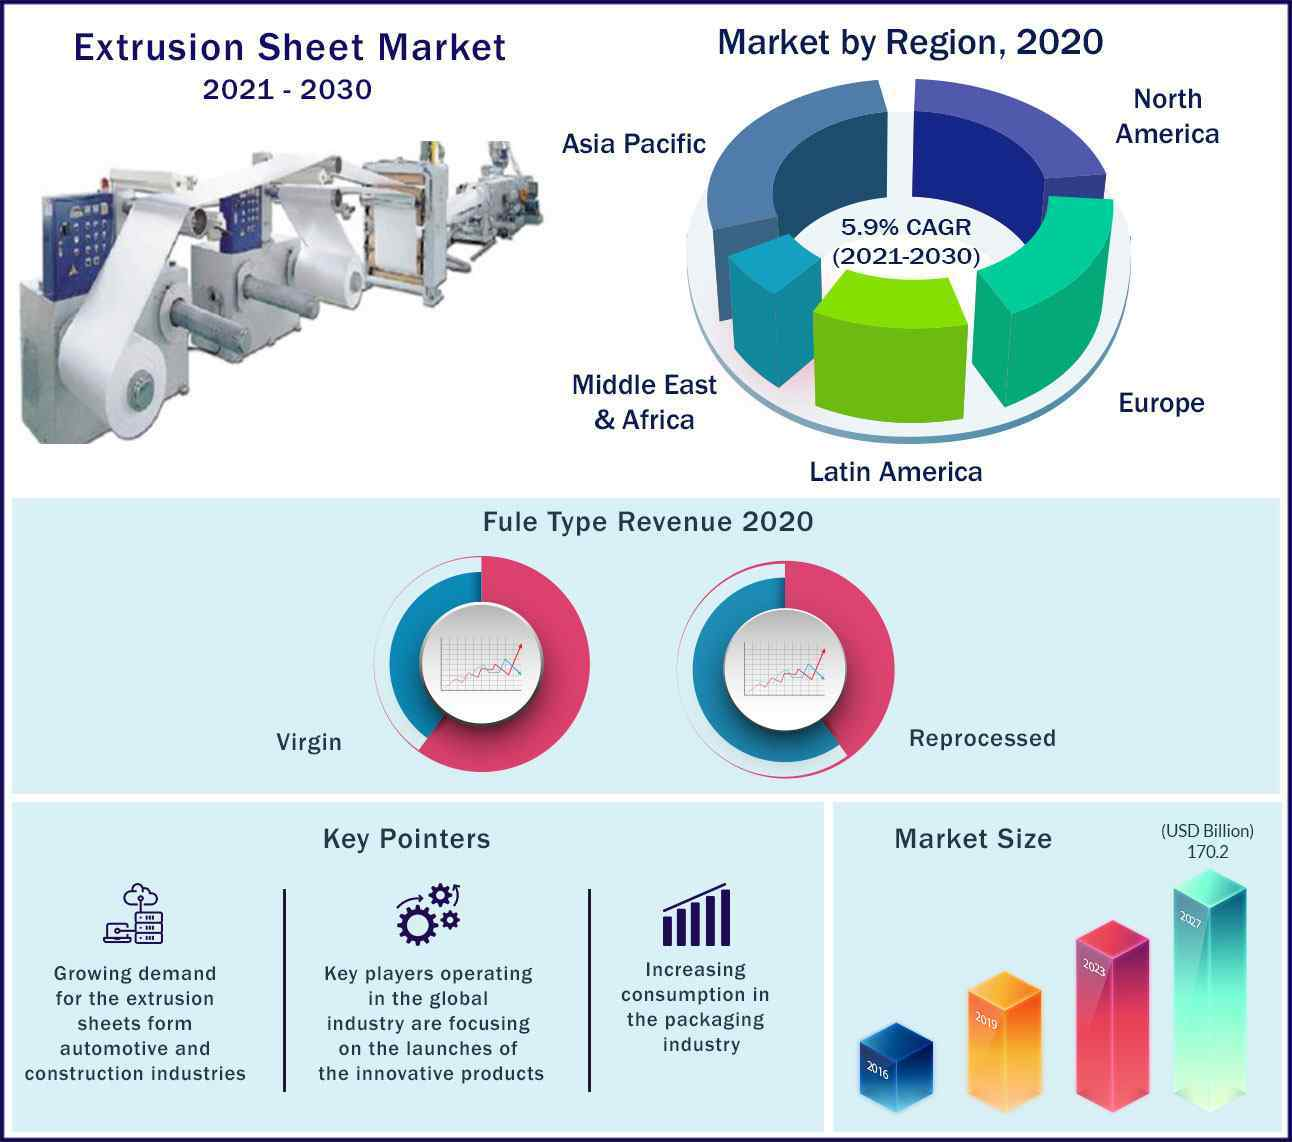 Global Extrusion Sheet Market 2021 to 2030